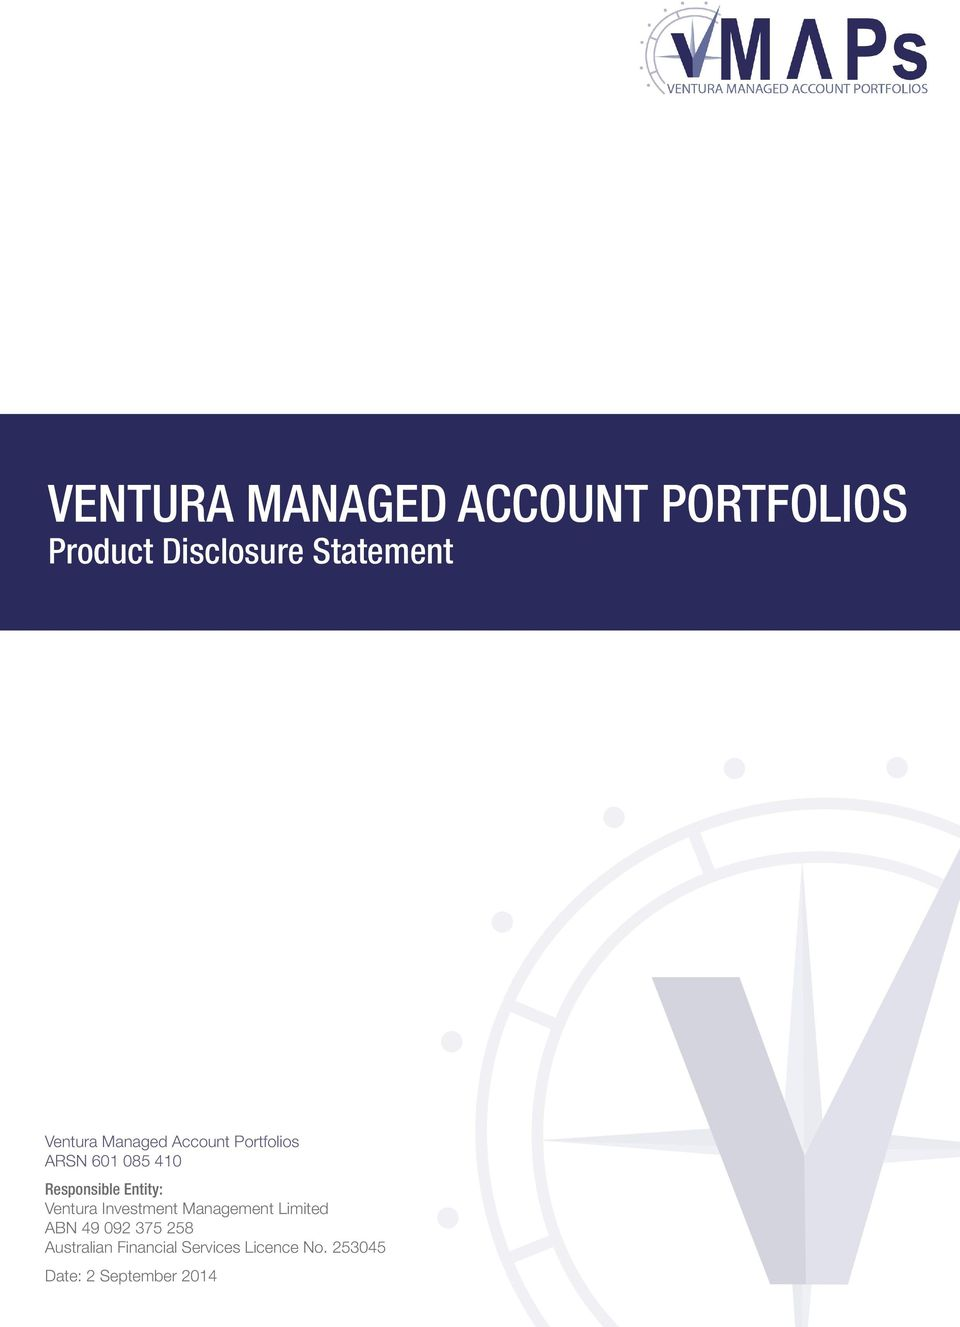 Entity: Ventura Investment Management Limited ABN 49 092 375 258